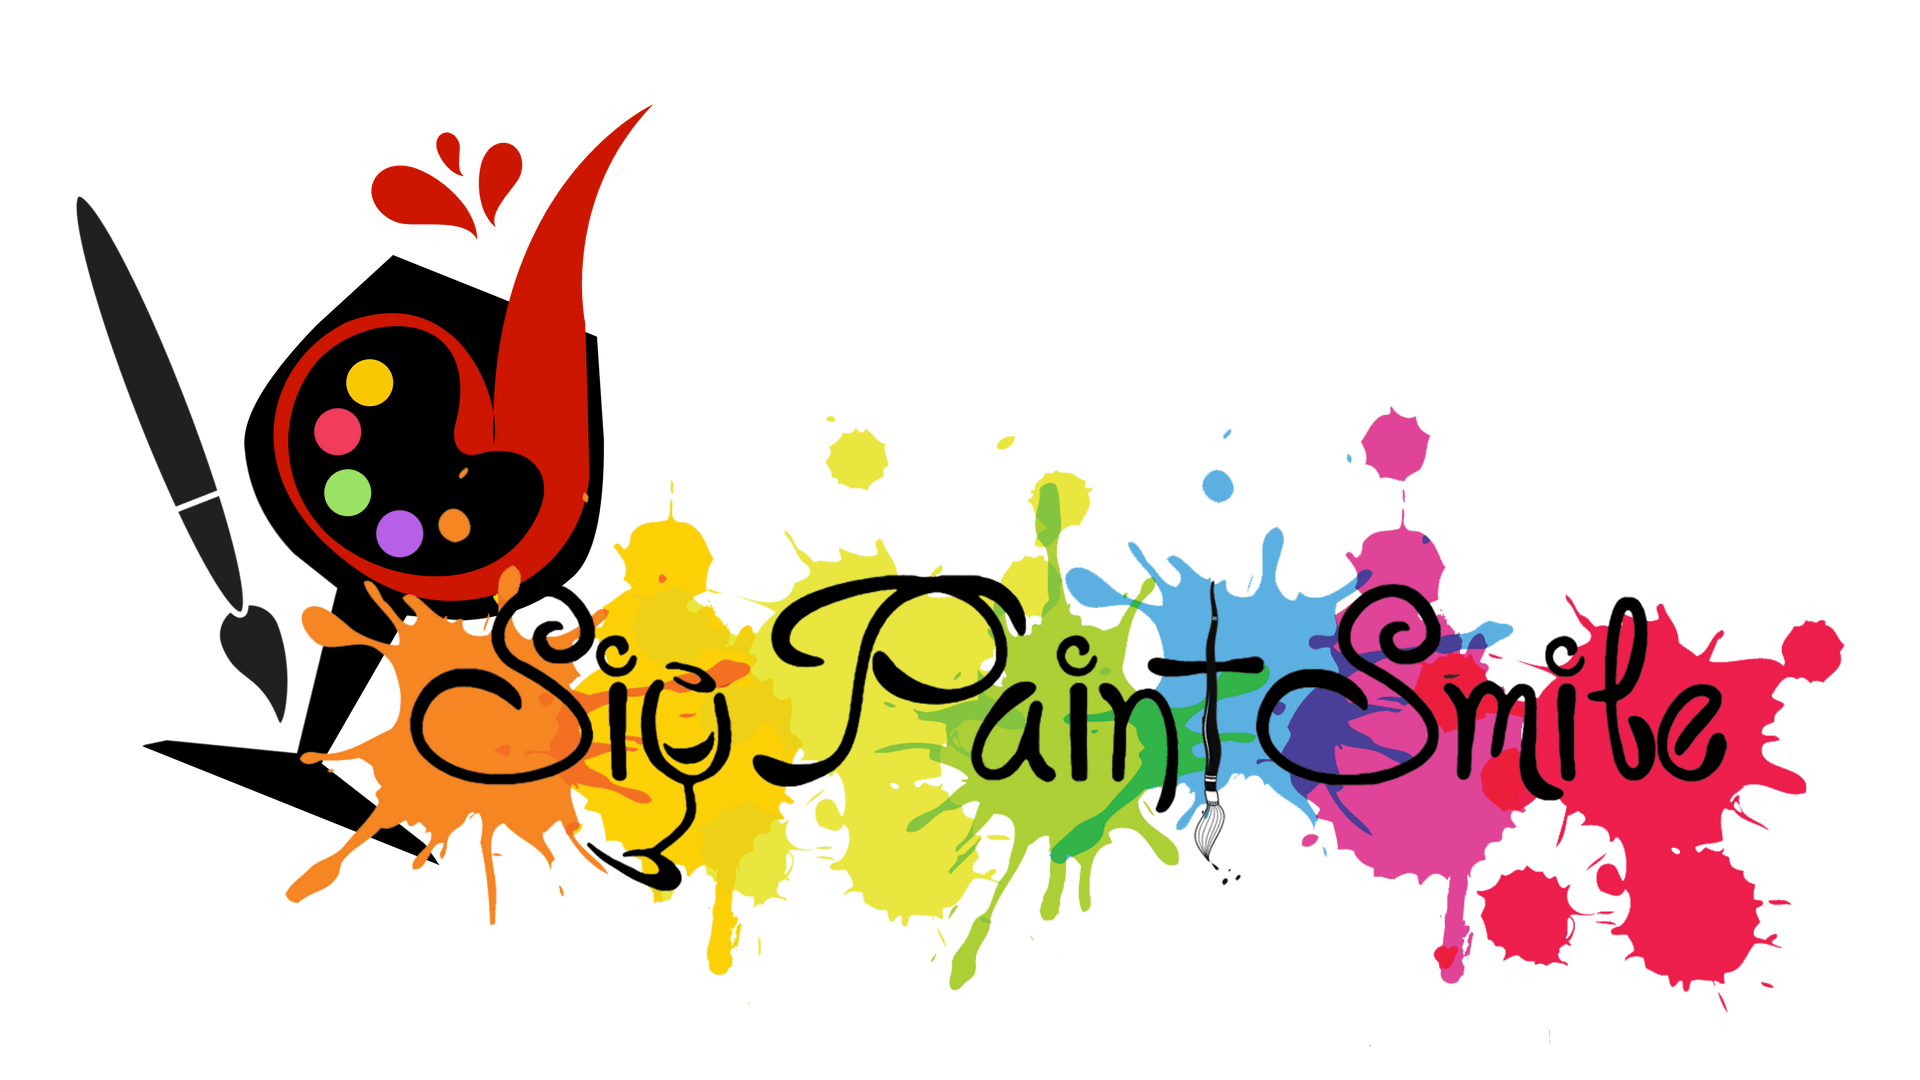 Paint night clipart picture free stock Painting clipart paint night, Painting paint night Transparent FREE ... picture free stock